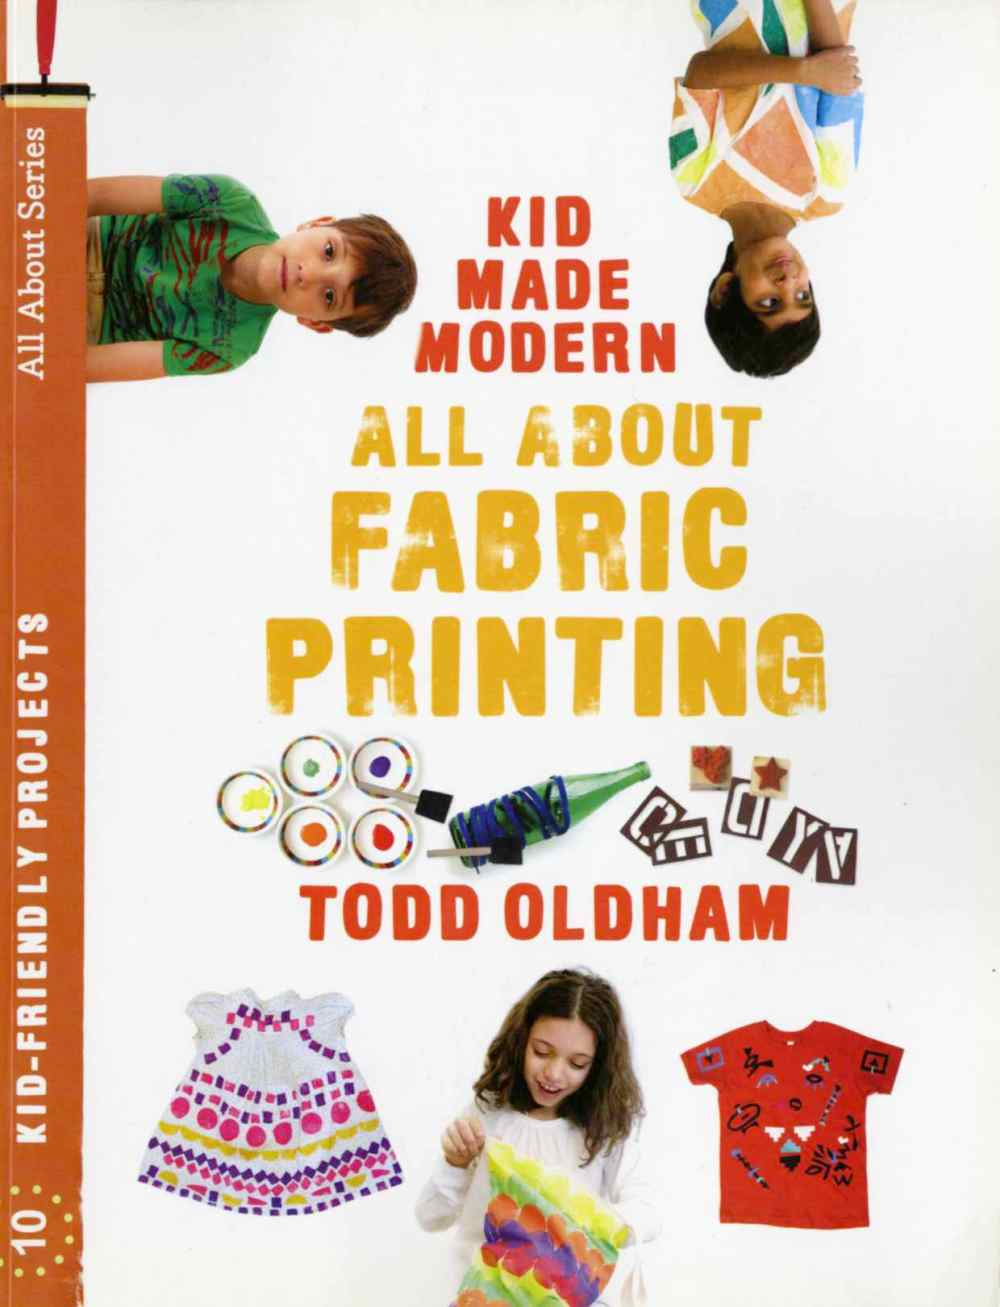 Kid Made Modern all about fabric printing